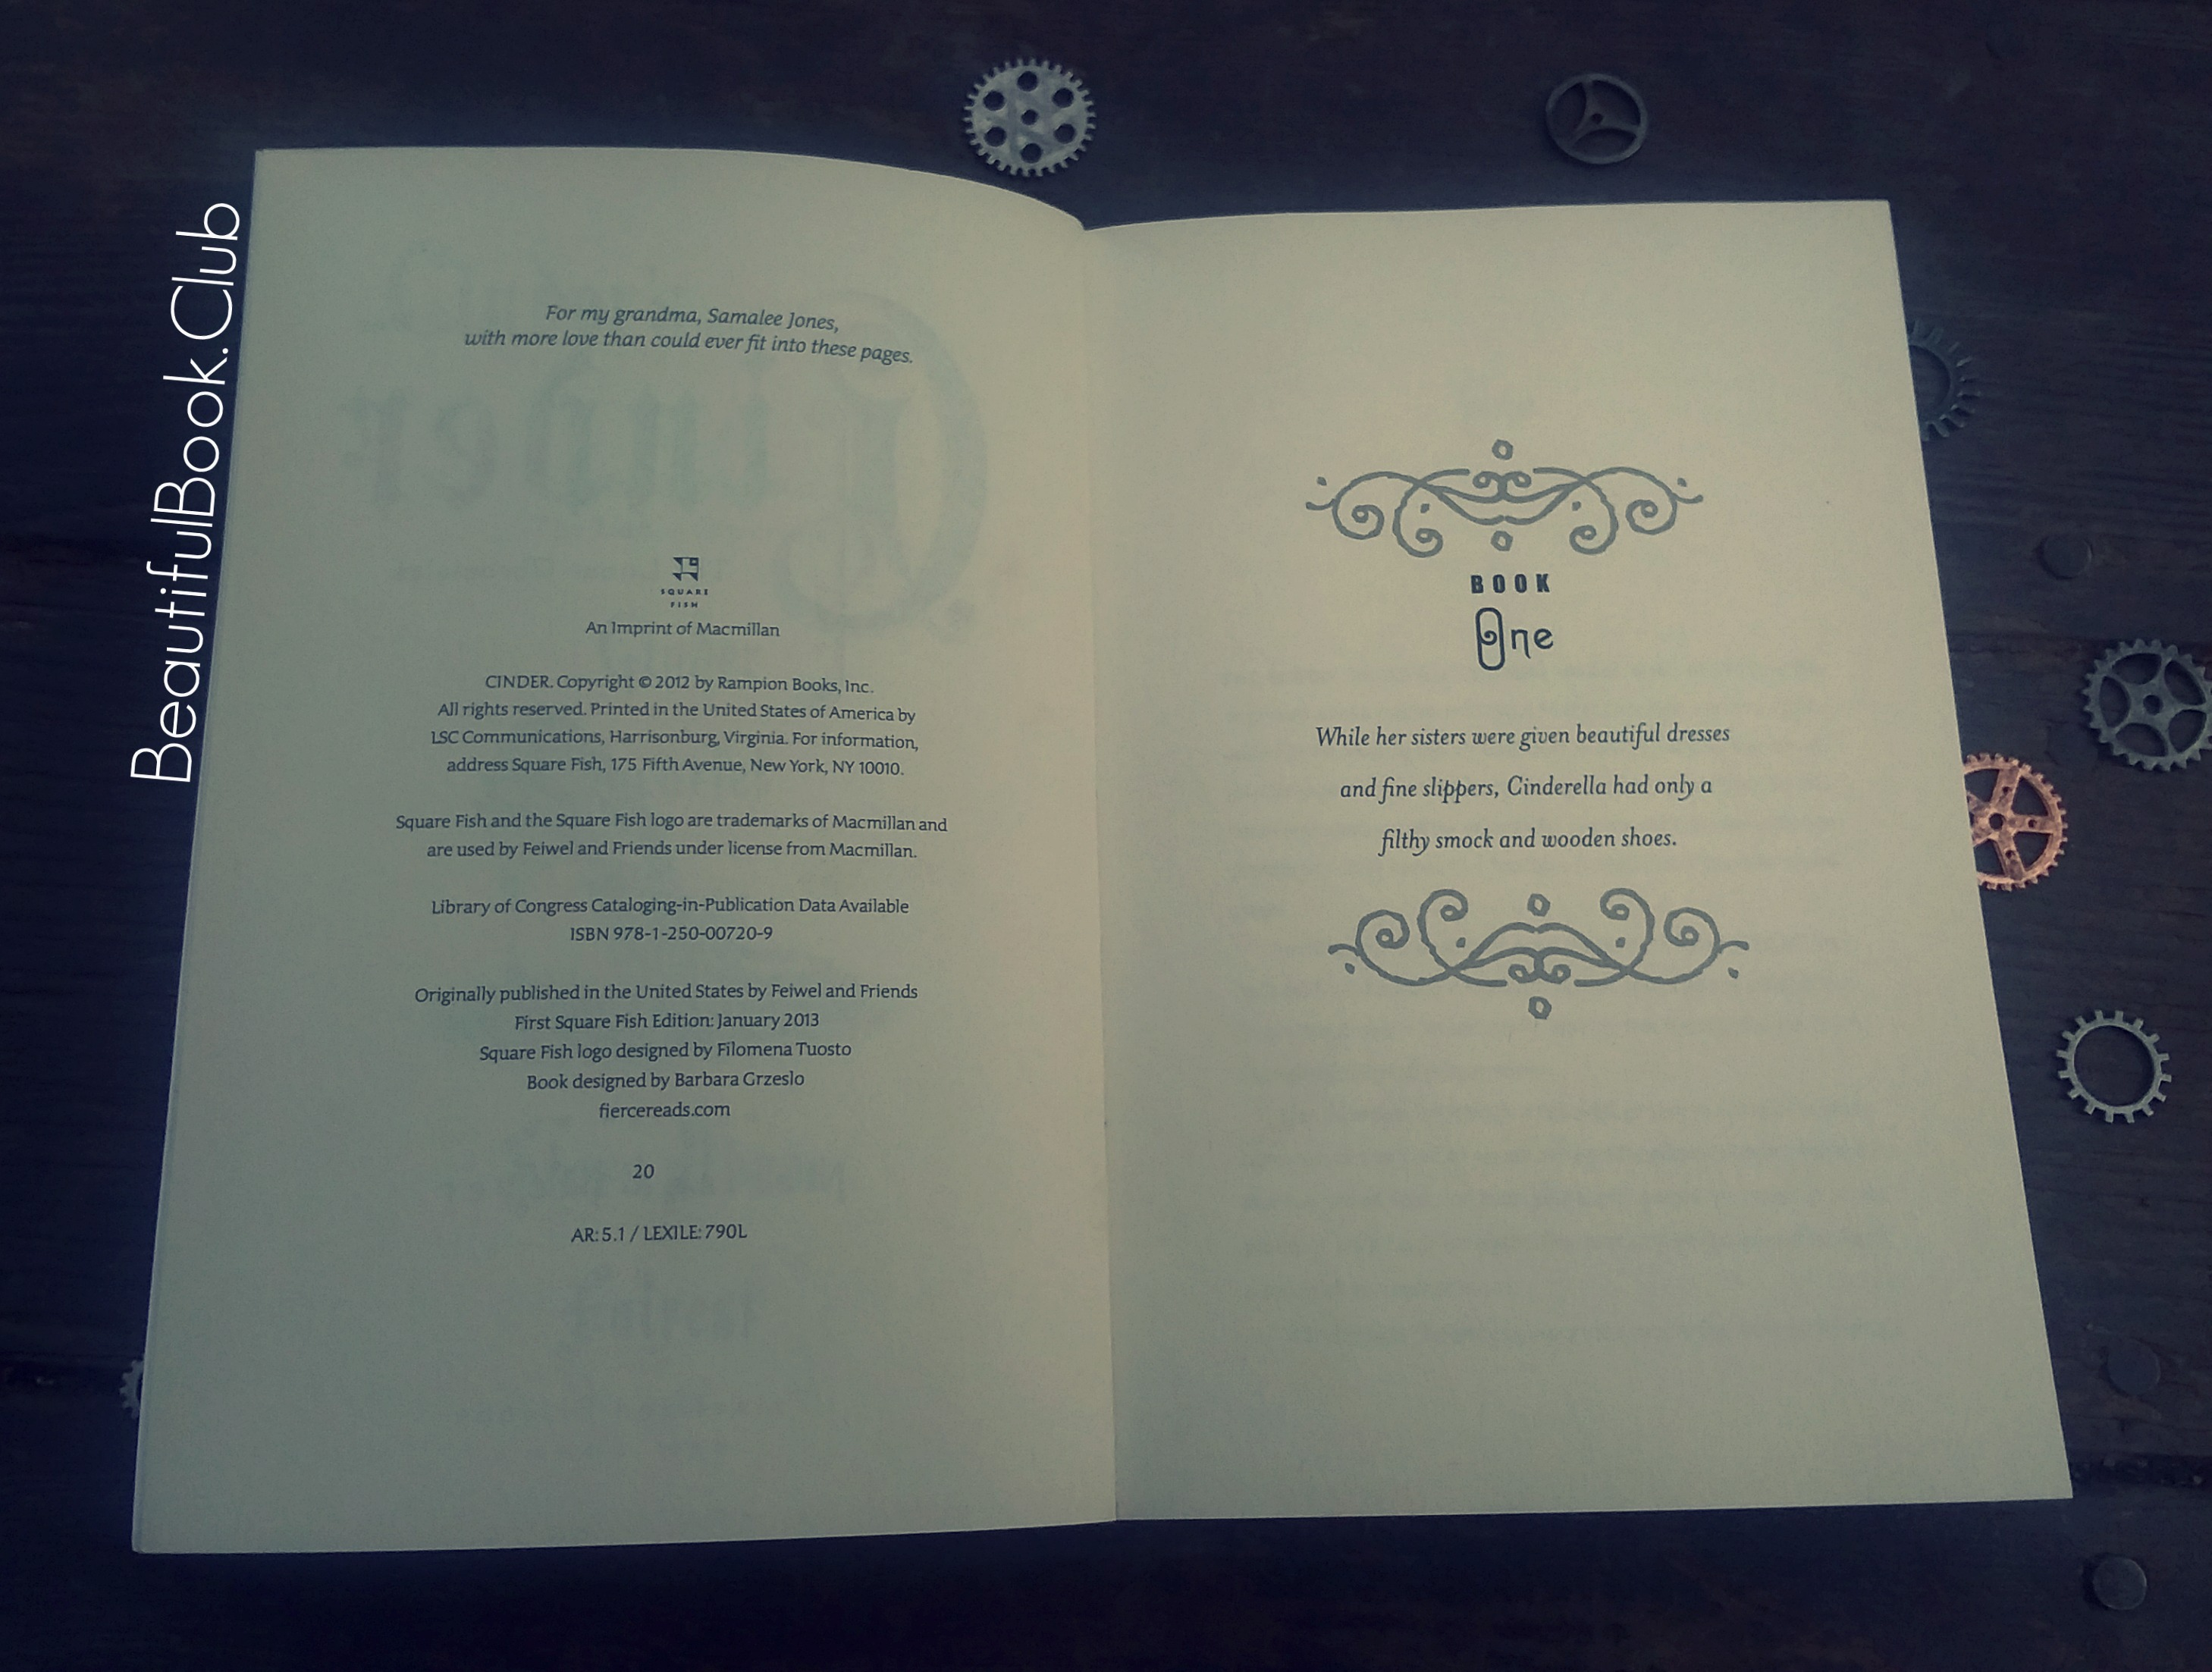 Cinder by Marissa Meyer book one page